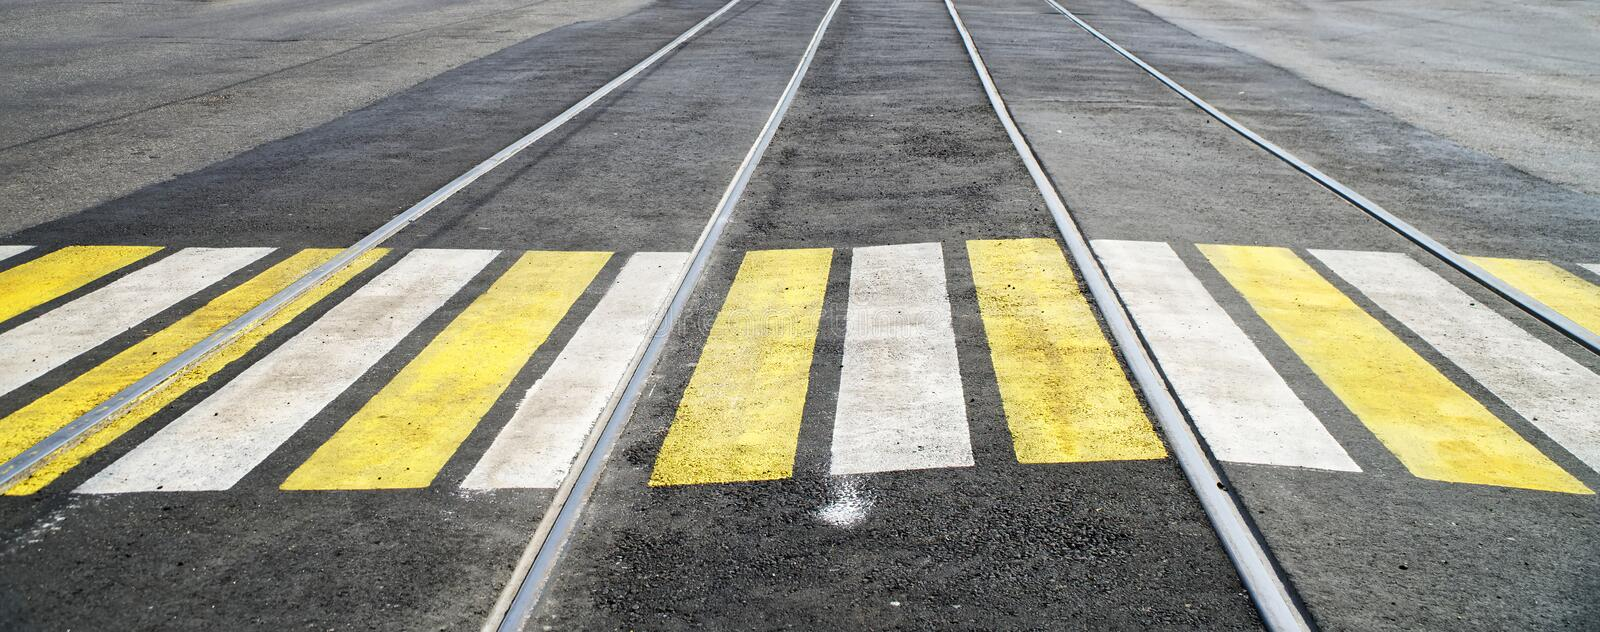 Paved crosswalk over tram rails, marked with white and yellow paint. Road safety. Urban economy stock photography